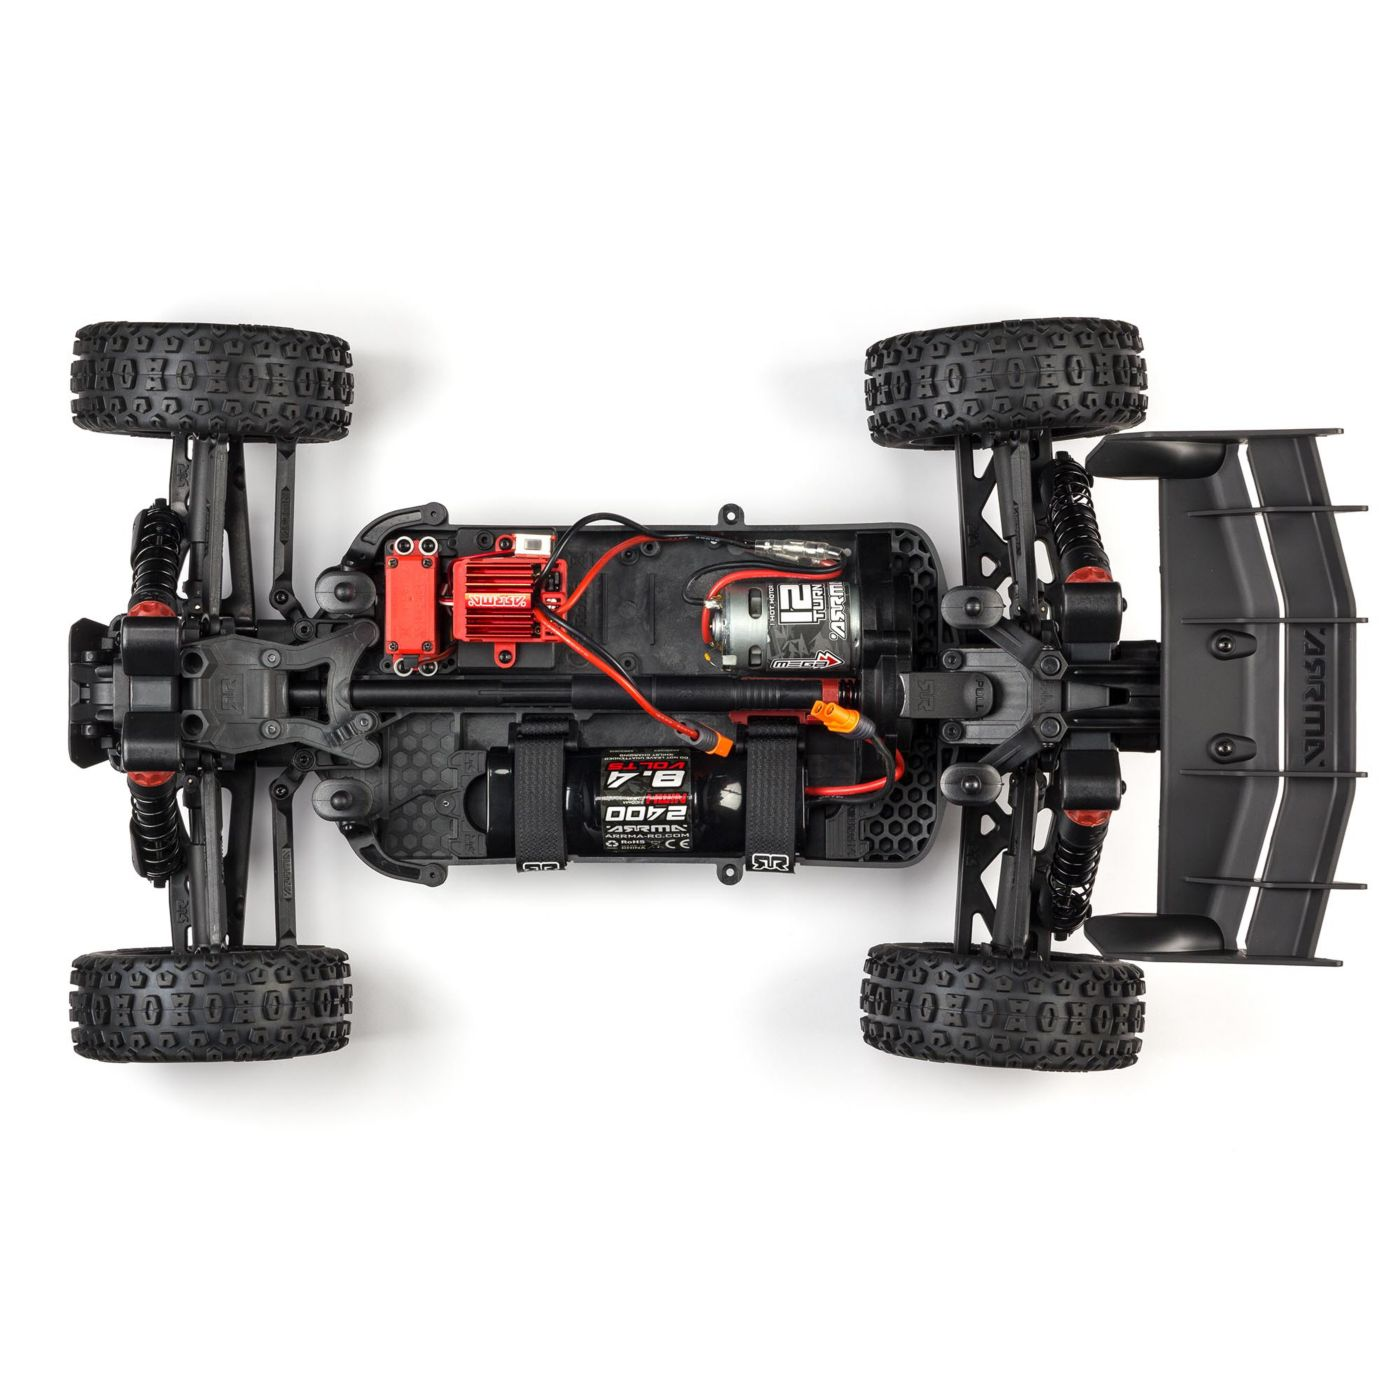 ARRMA Typhon 4x4 MEGA Speed Buggy - Chassis Top